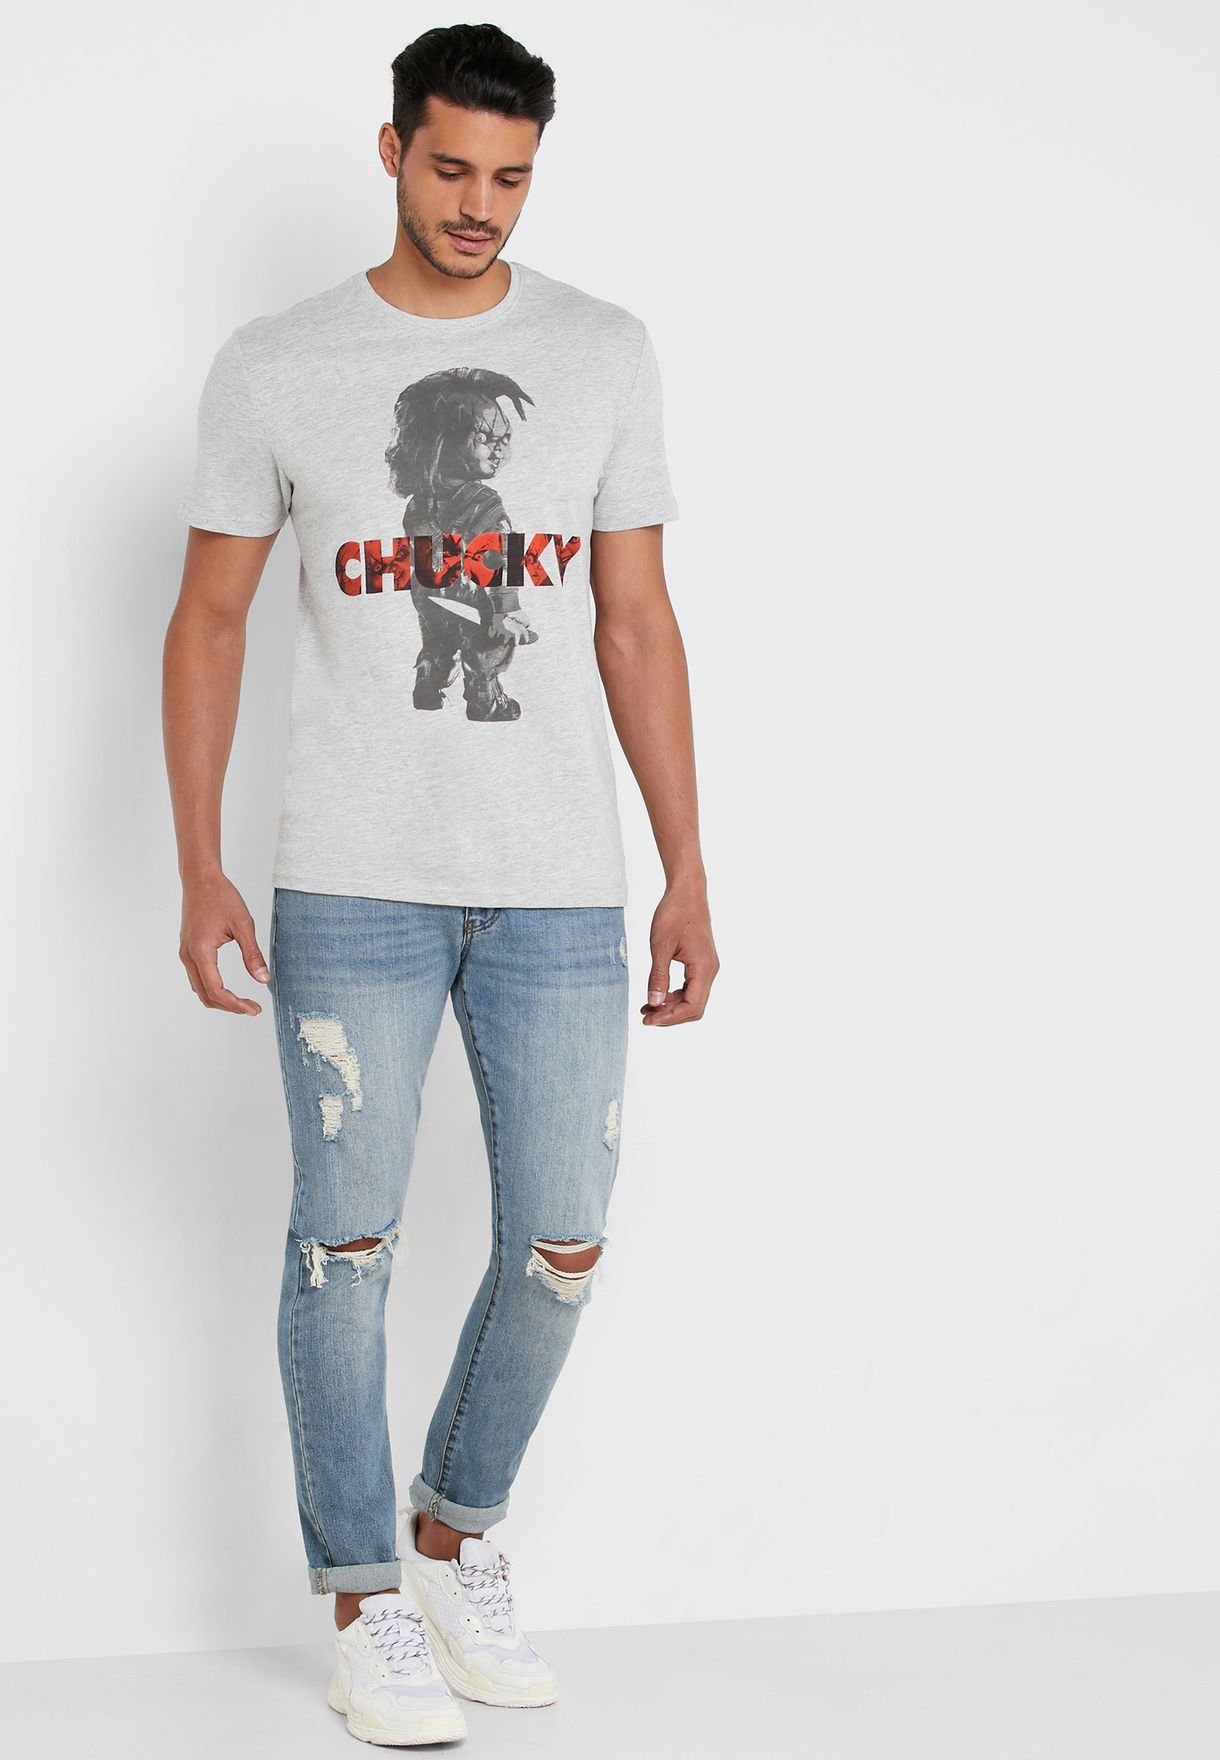 Chucky Graphic Crew Neck T-Shirt